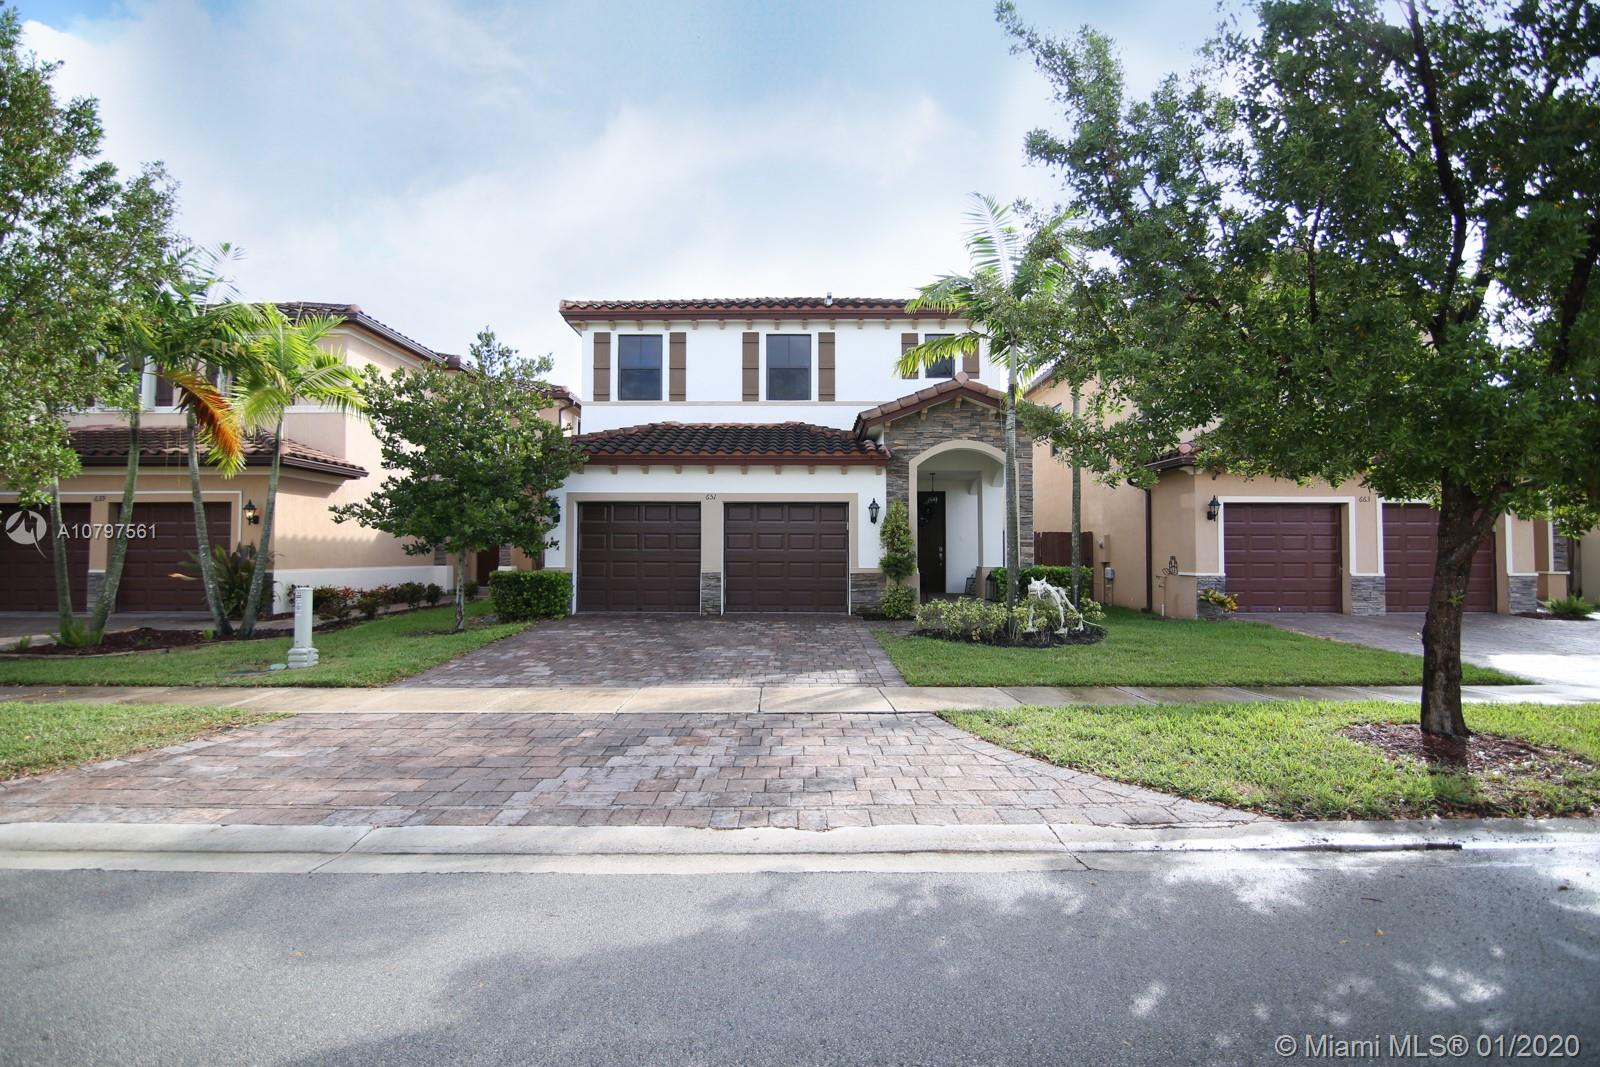 651 SE 34th Ave, Homestead, FL 33033 - Homestead, FL real estate listing